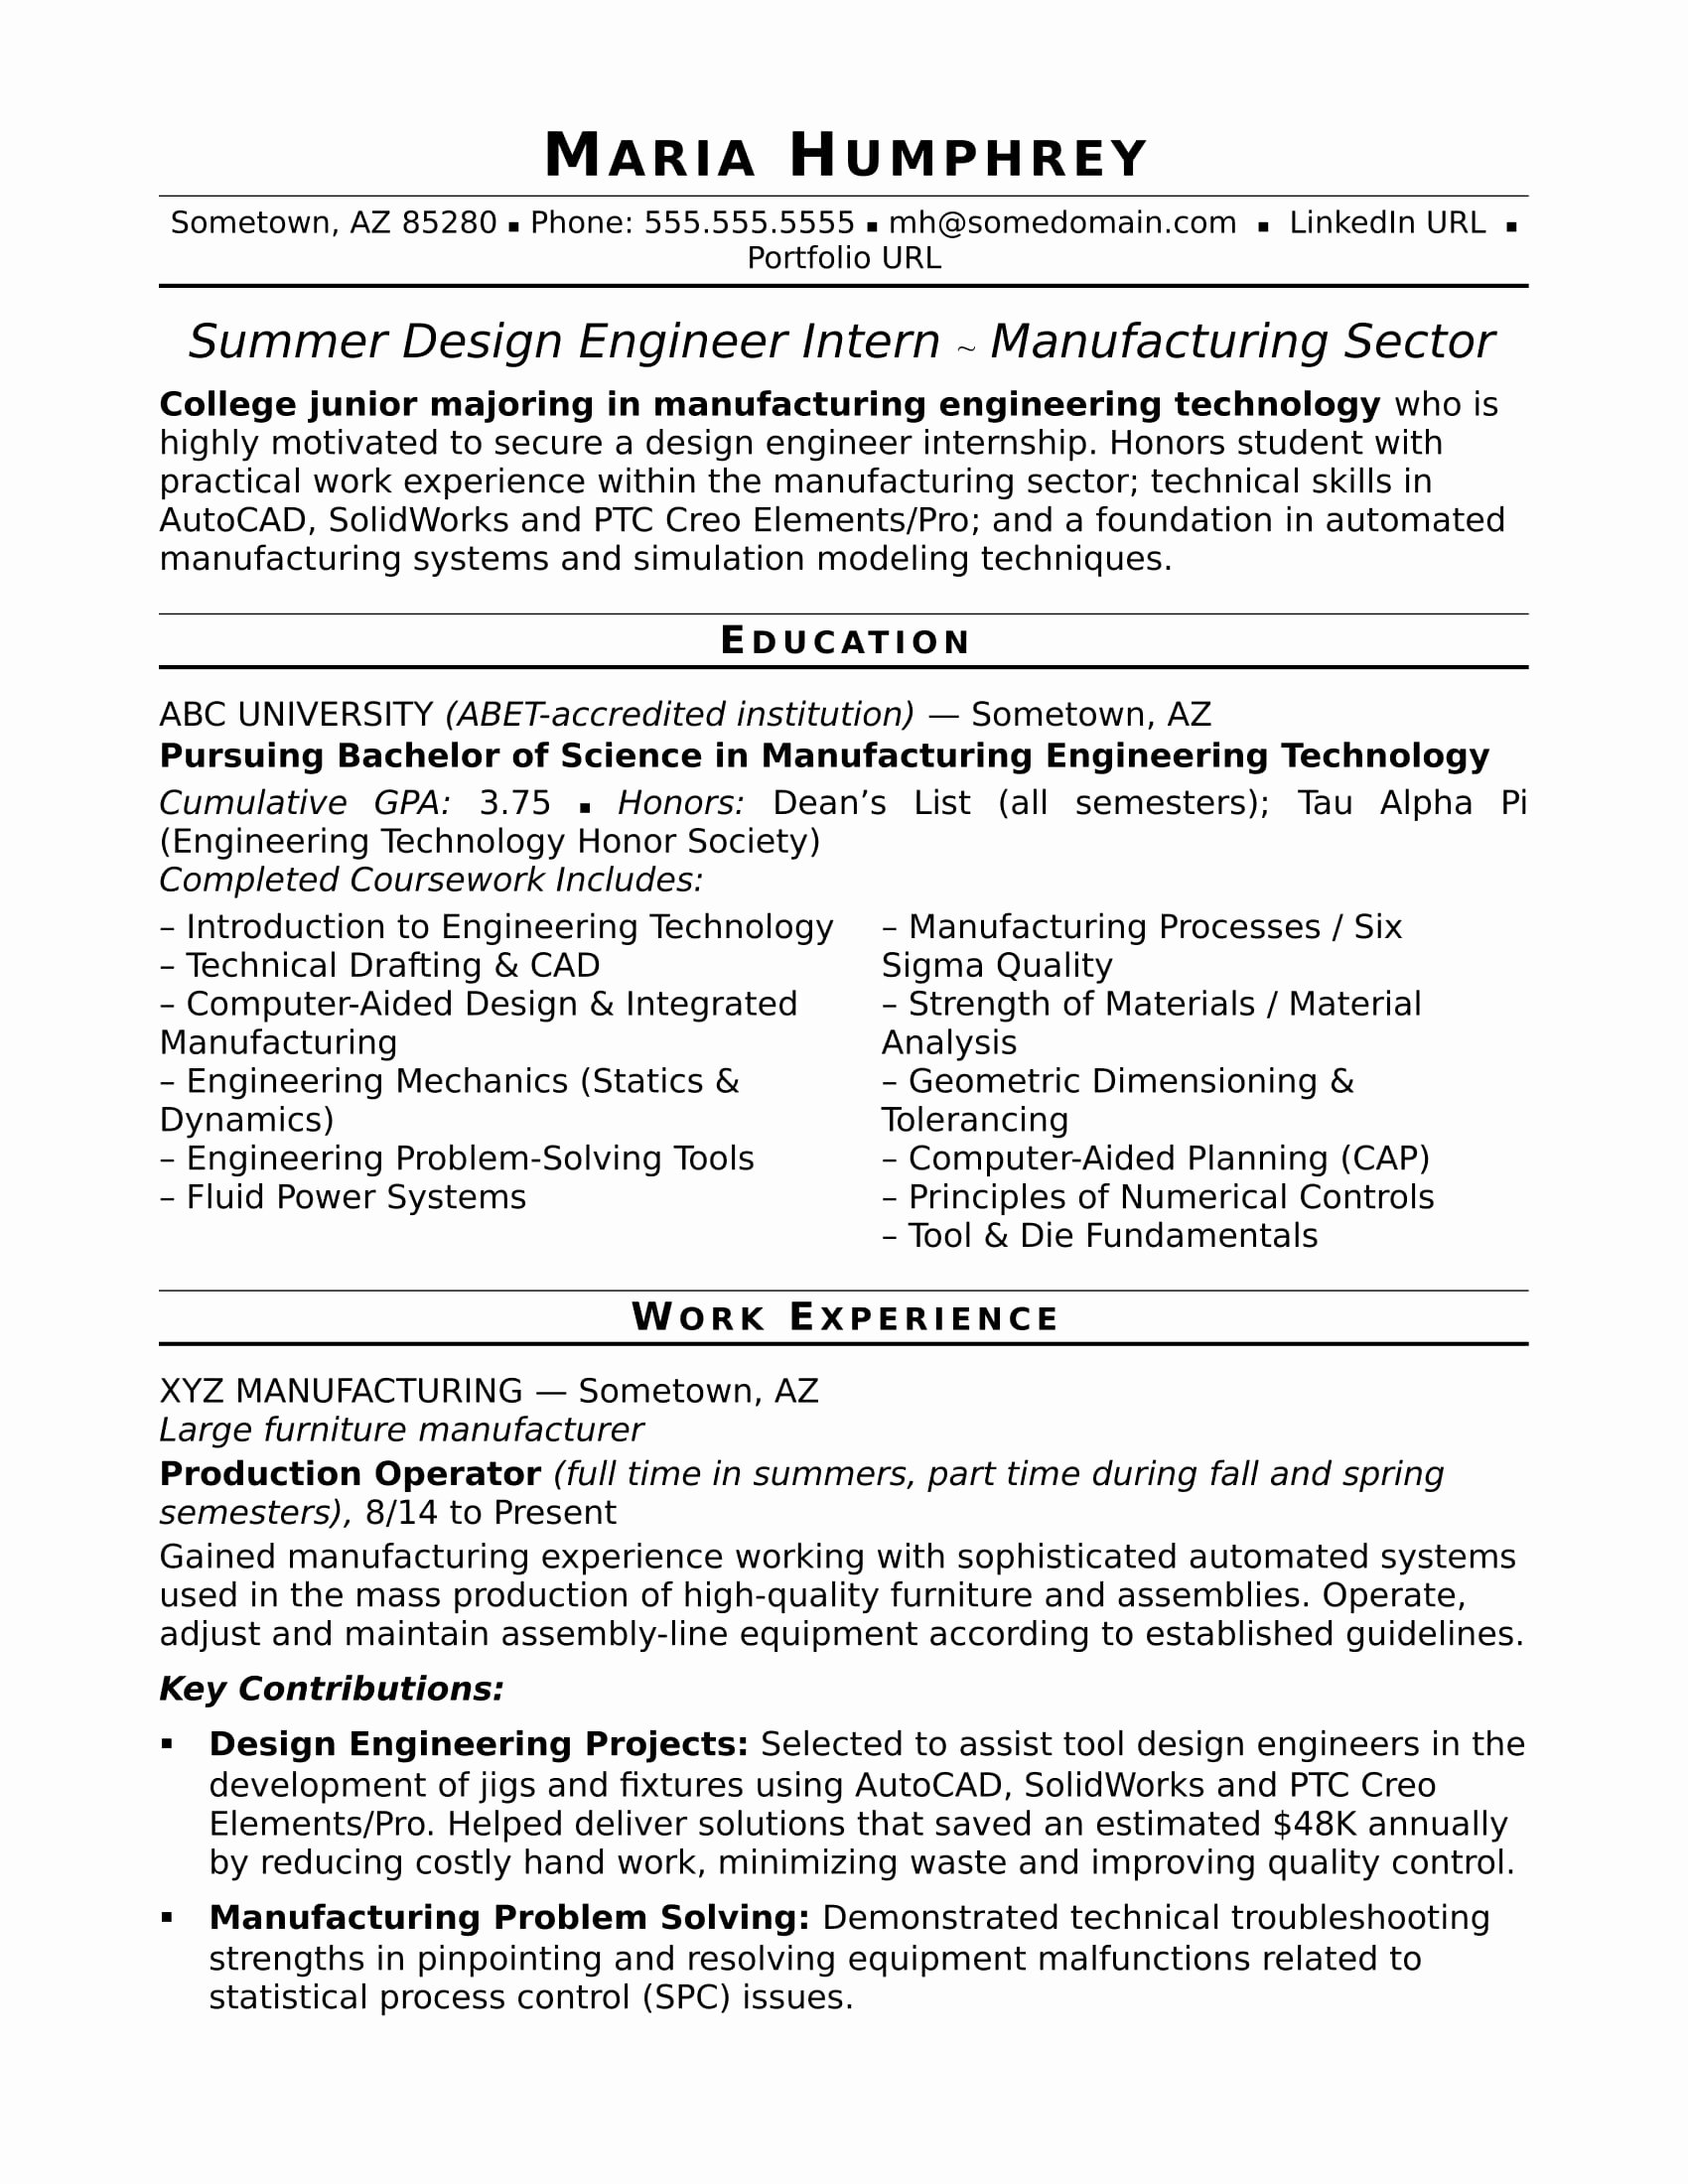 Entry Level Mechanical Engineering Resume Beautiful Sample Resume for An Entry Level Design Engineer